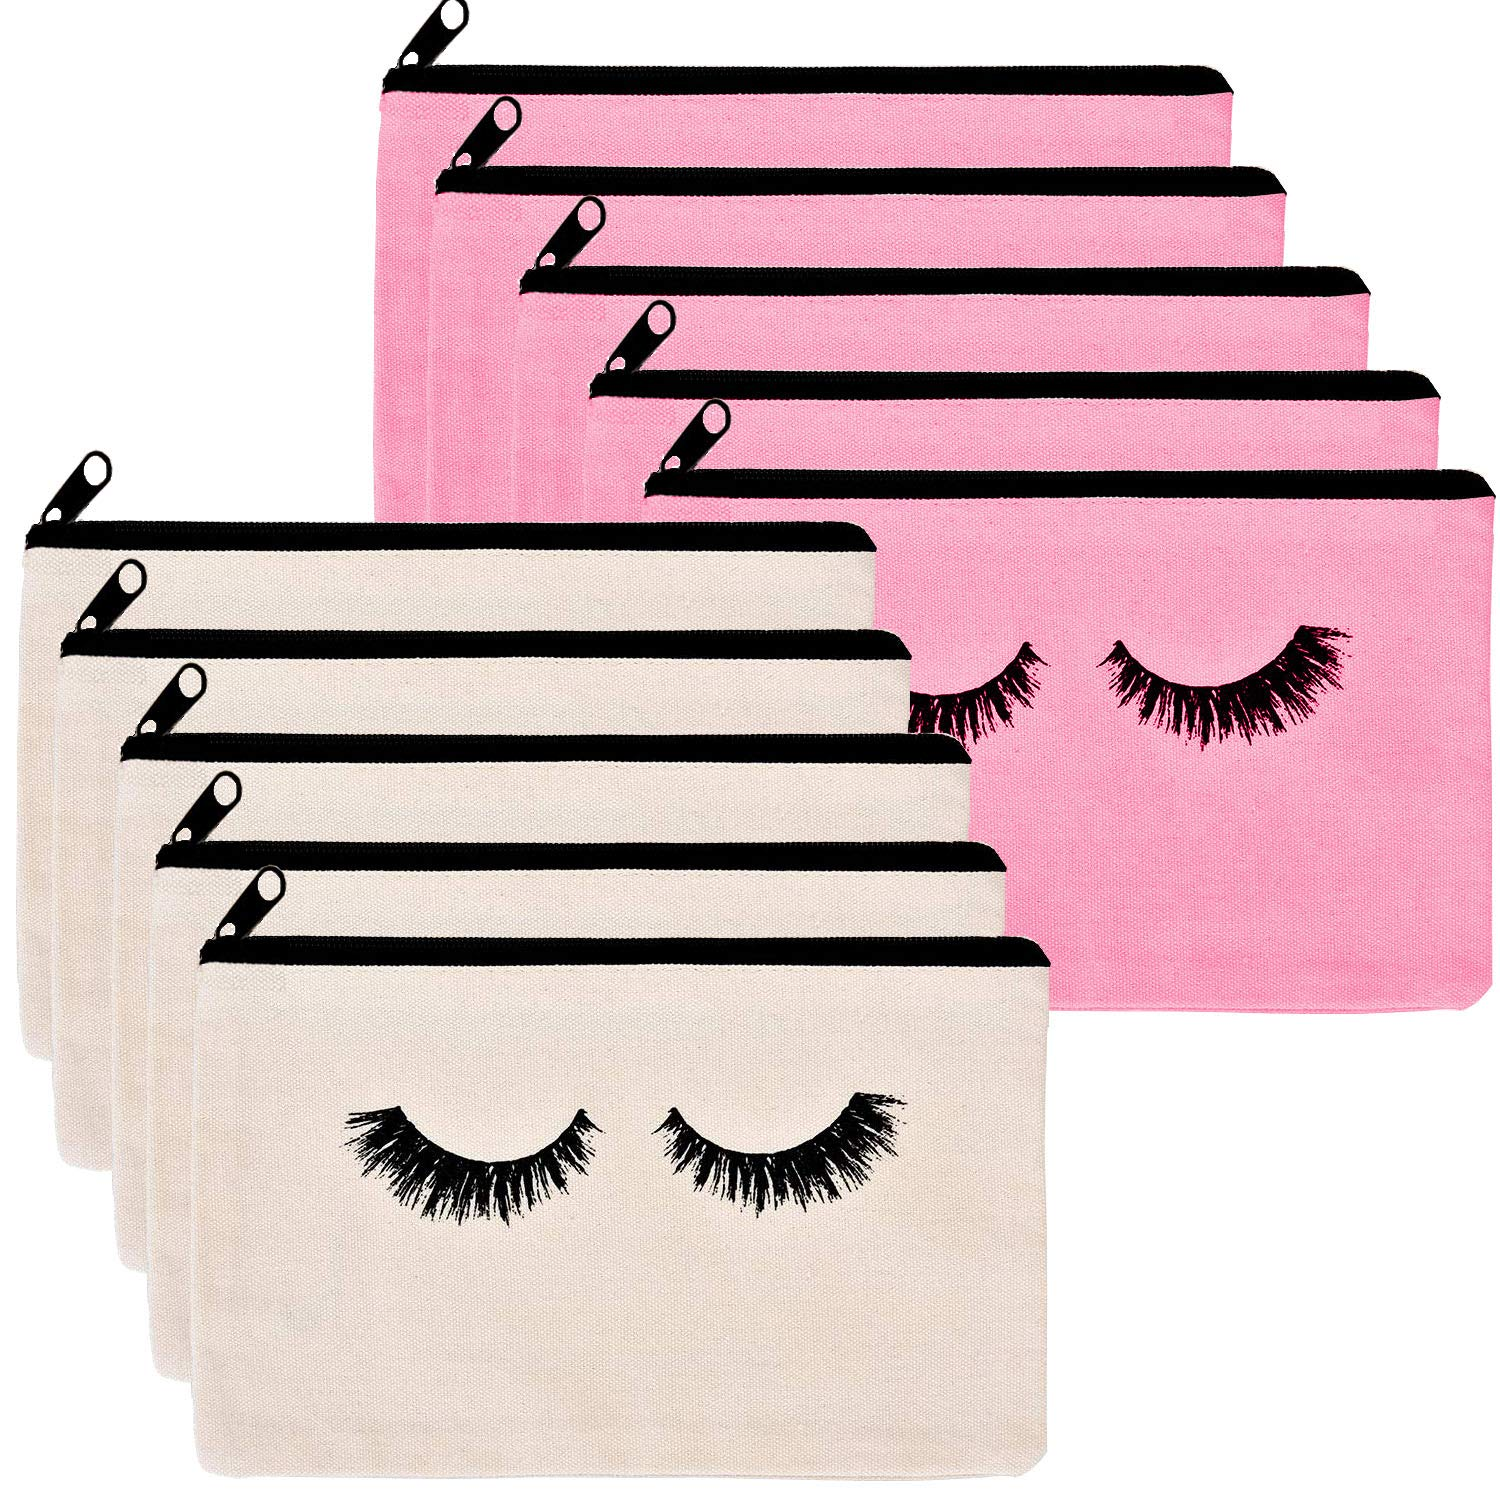 10 Pieces Eyelash canvas makeup bags - Kcddumk Cosmetic Bags Travel Pouches Toiletry Bag Cases with Zipper for Women and girls (Beige and Pink)